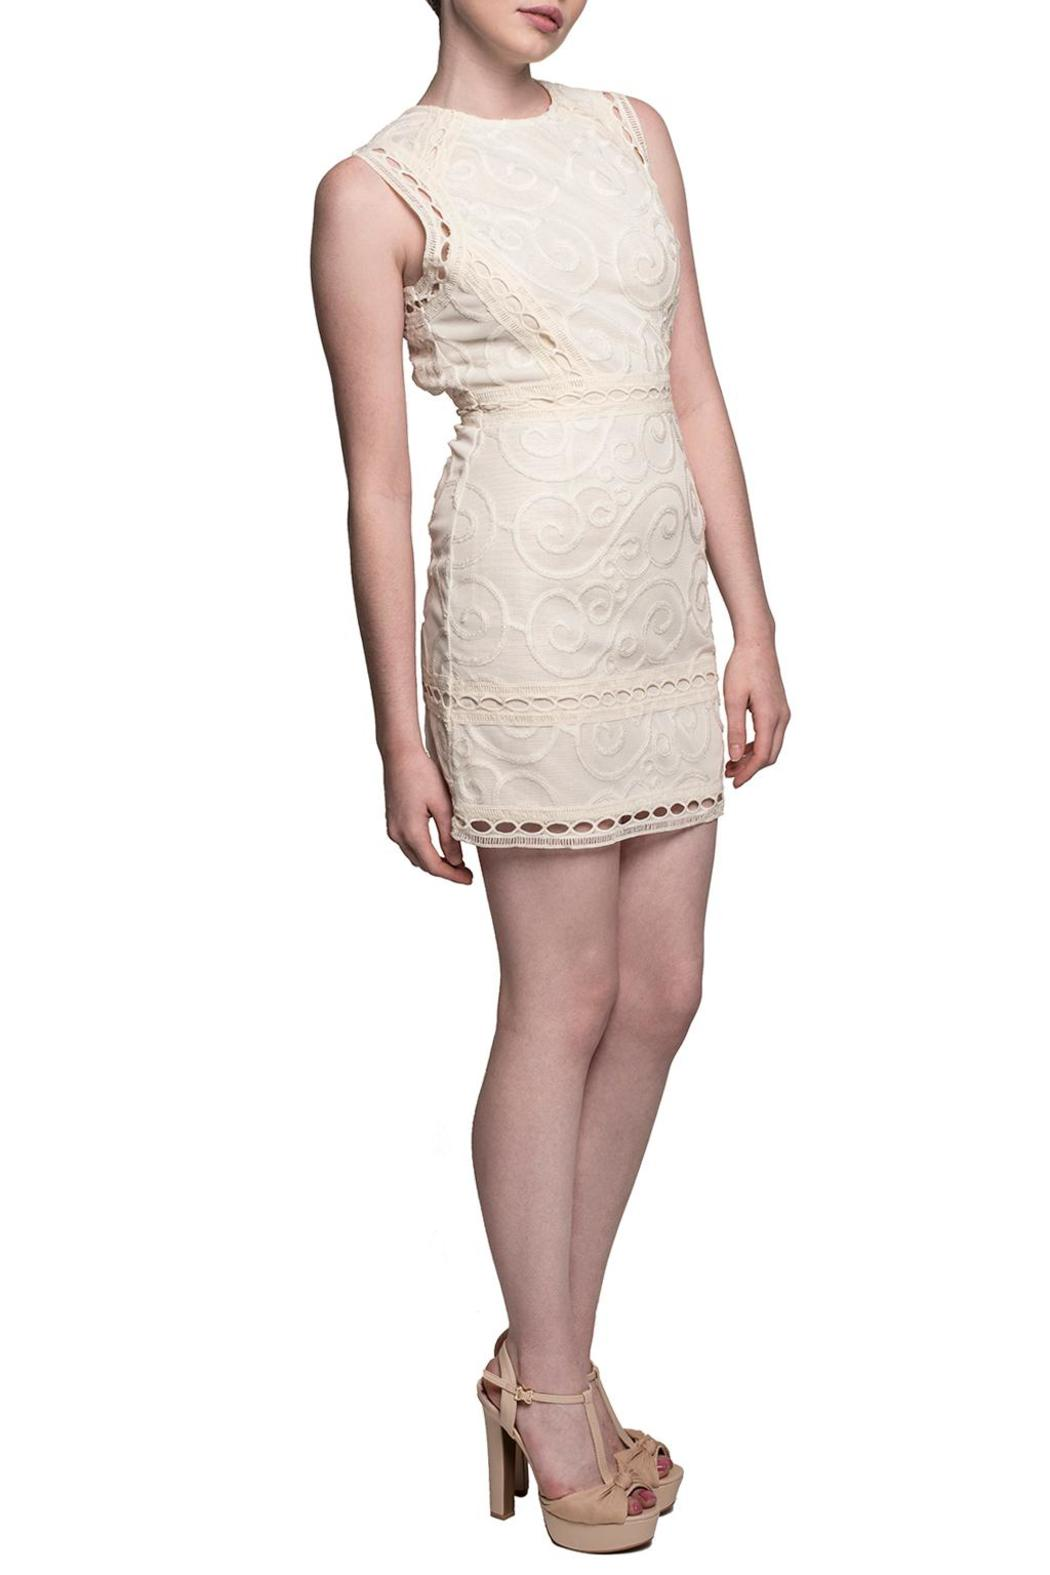 J.O.A. Victoria Lace Dress - Front Full Image